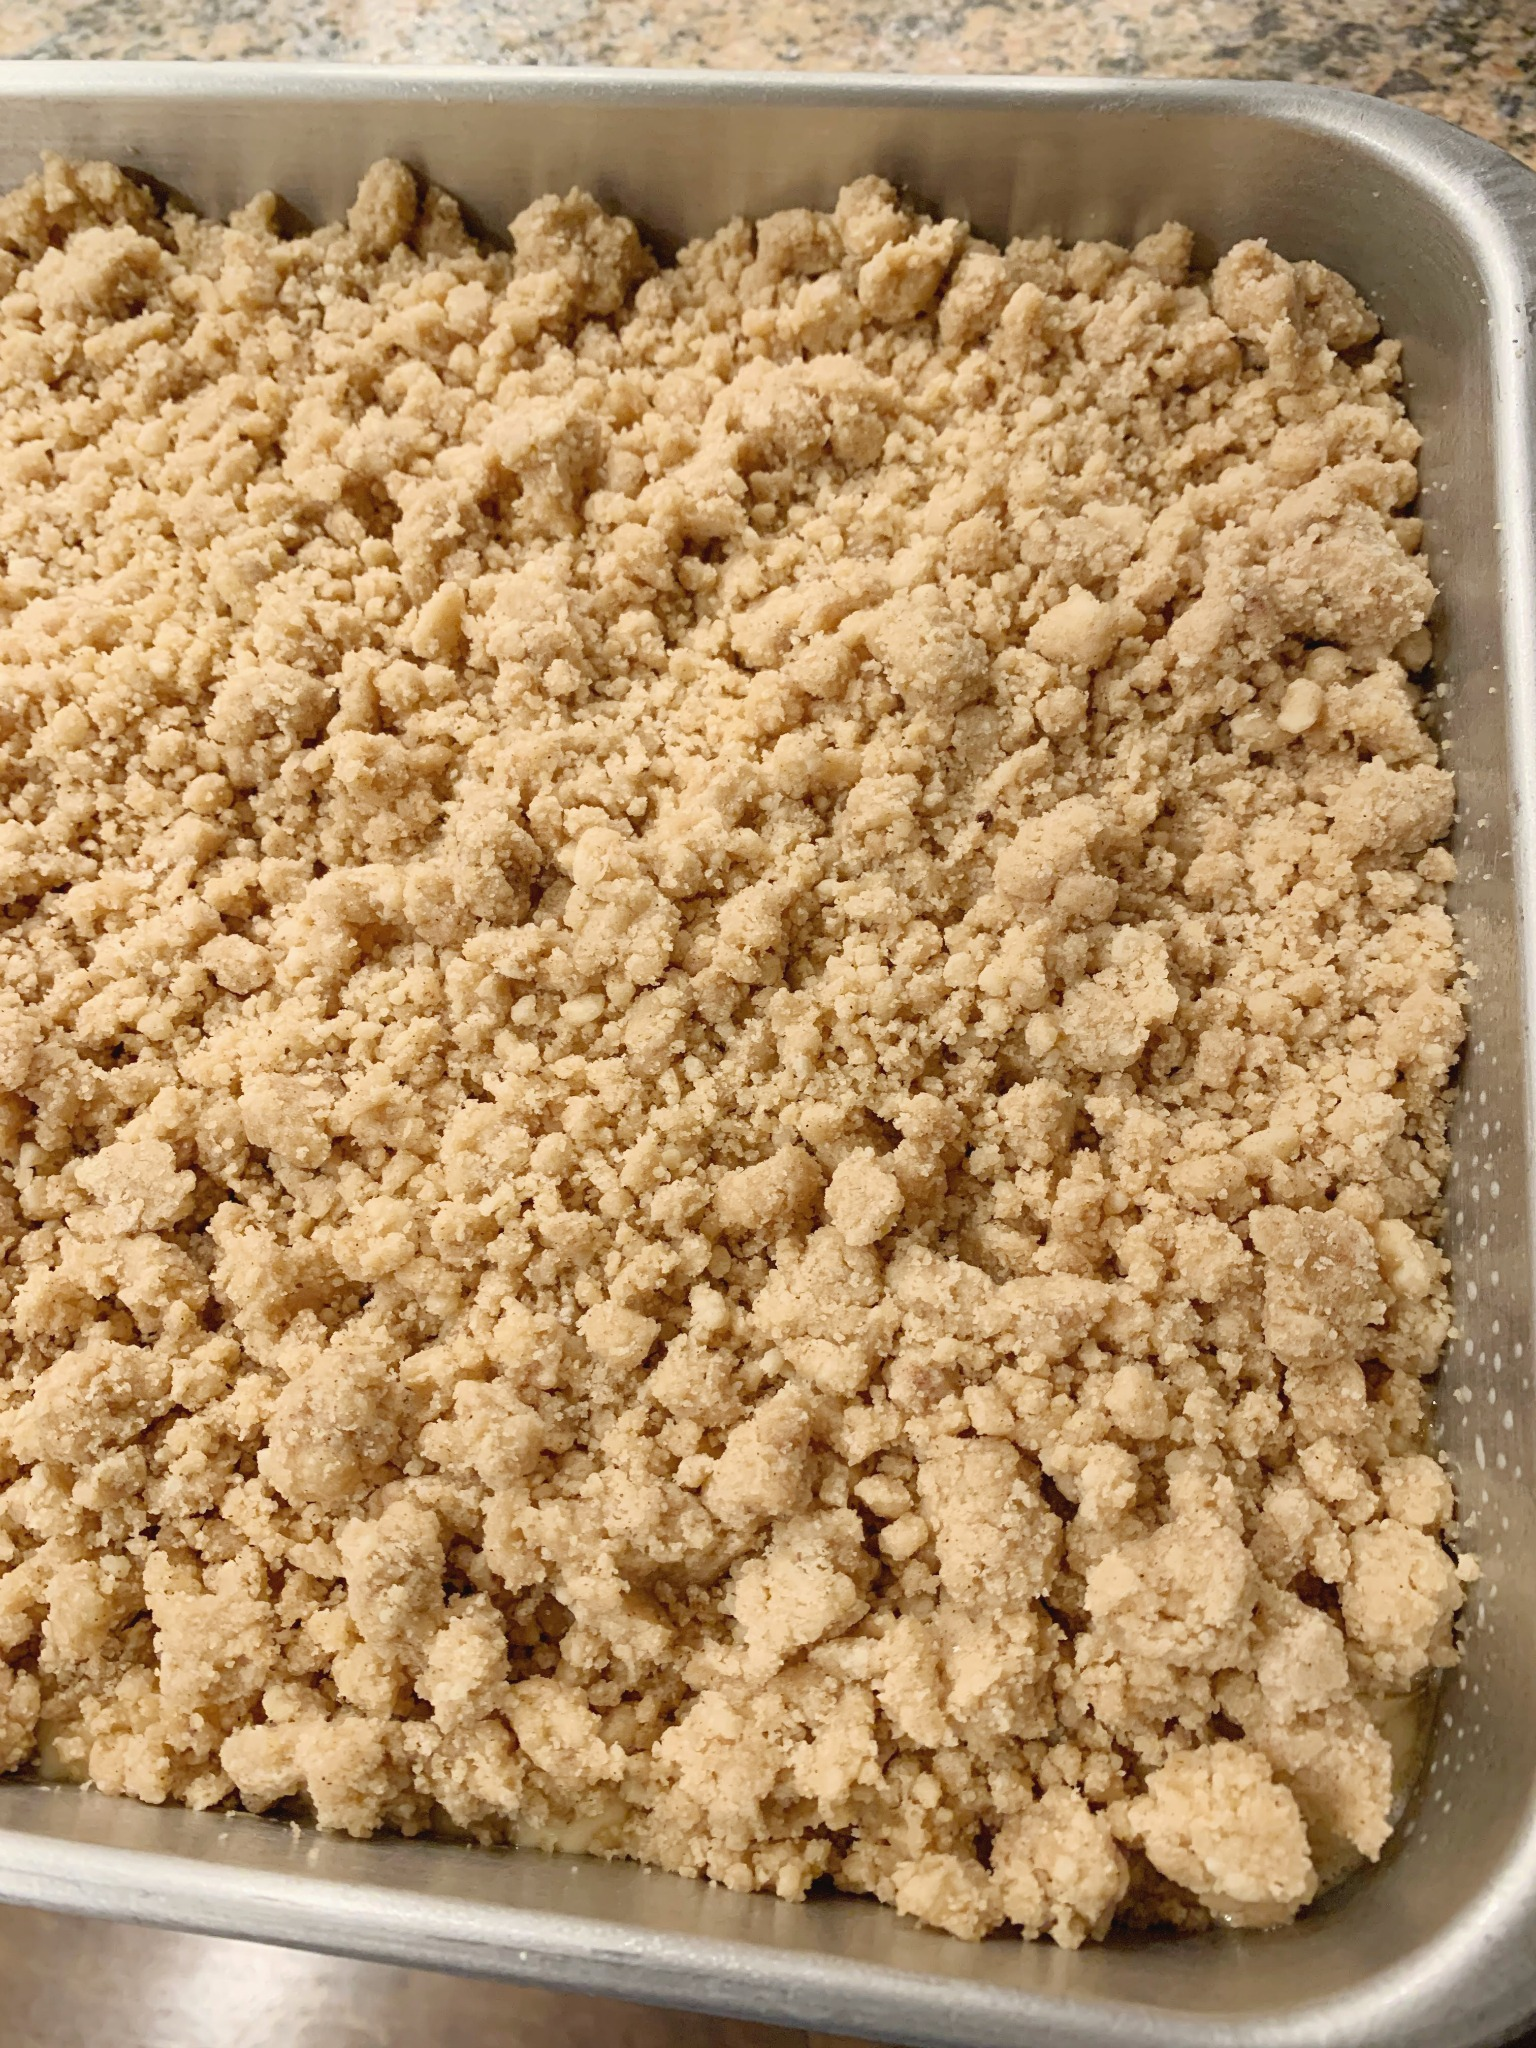 the crumbs on top of the batter before it is baked